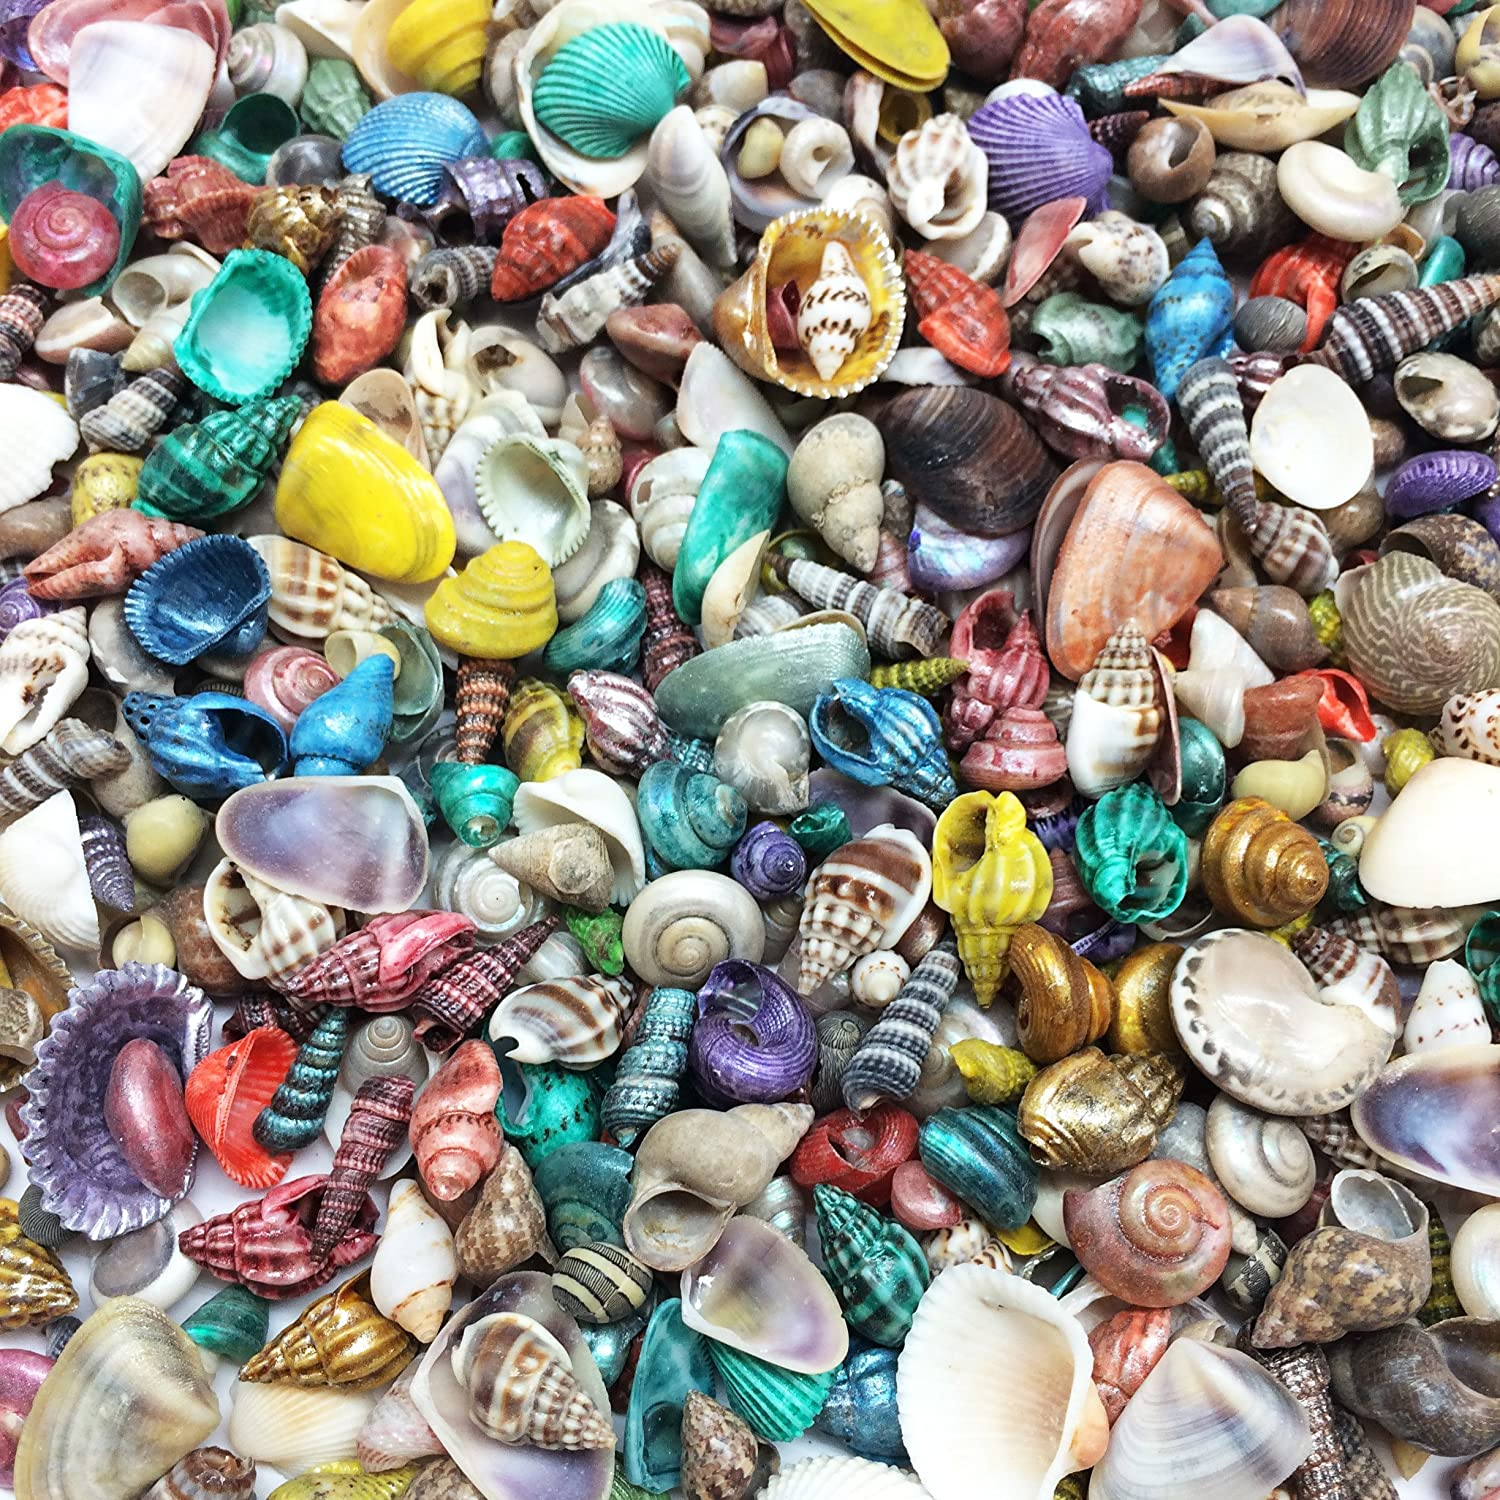 11 . Extra Small Dyed Natural Mix Shells, 1 4\ PEPPERLONELY Extra Small Dyed Natural Mix Seashells, Very Small & Clean, 8 OZ Apprx.1600+ PC Shells, 1 4 Inch  1 2 Inch